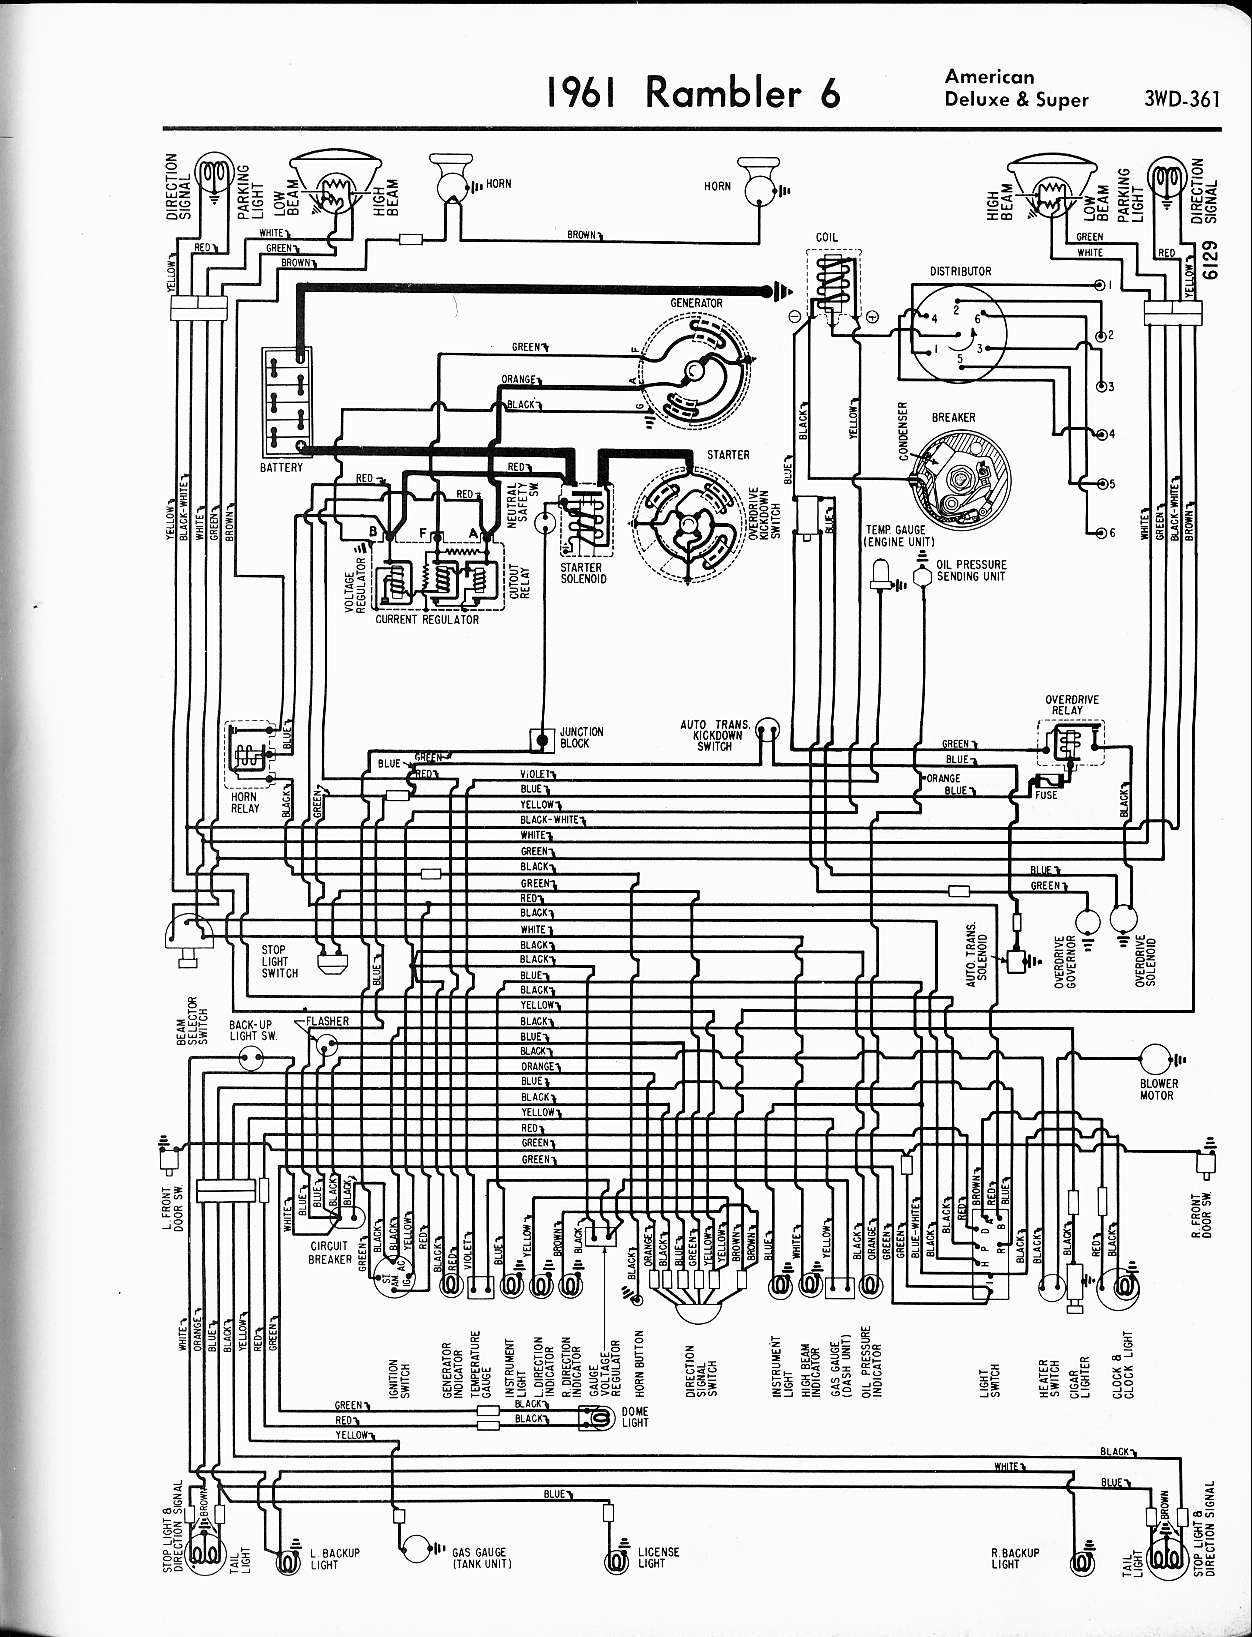 record 8100 wiring diagram record 6100 door operator